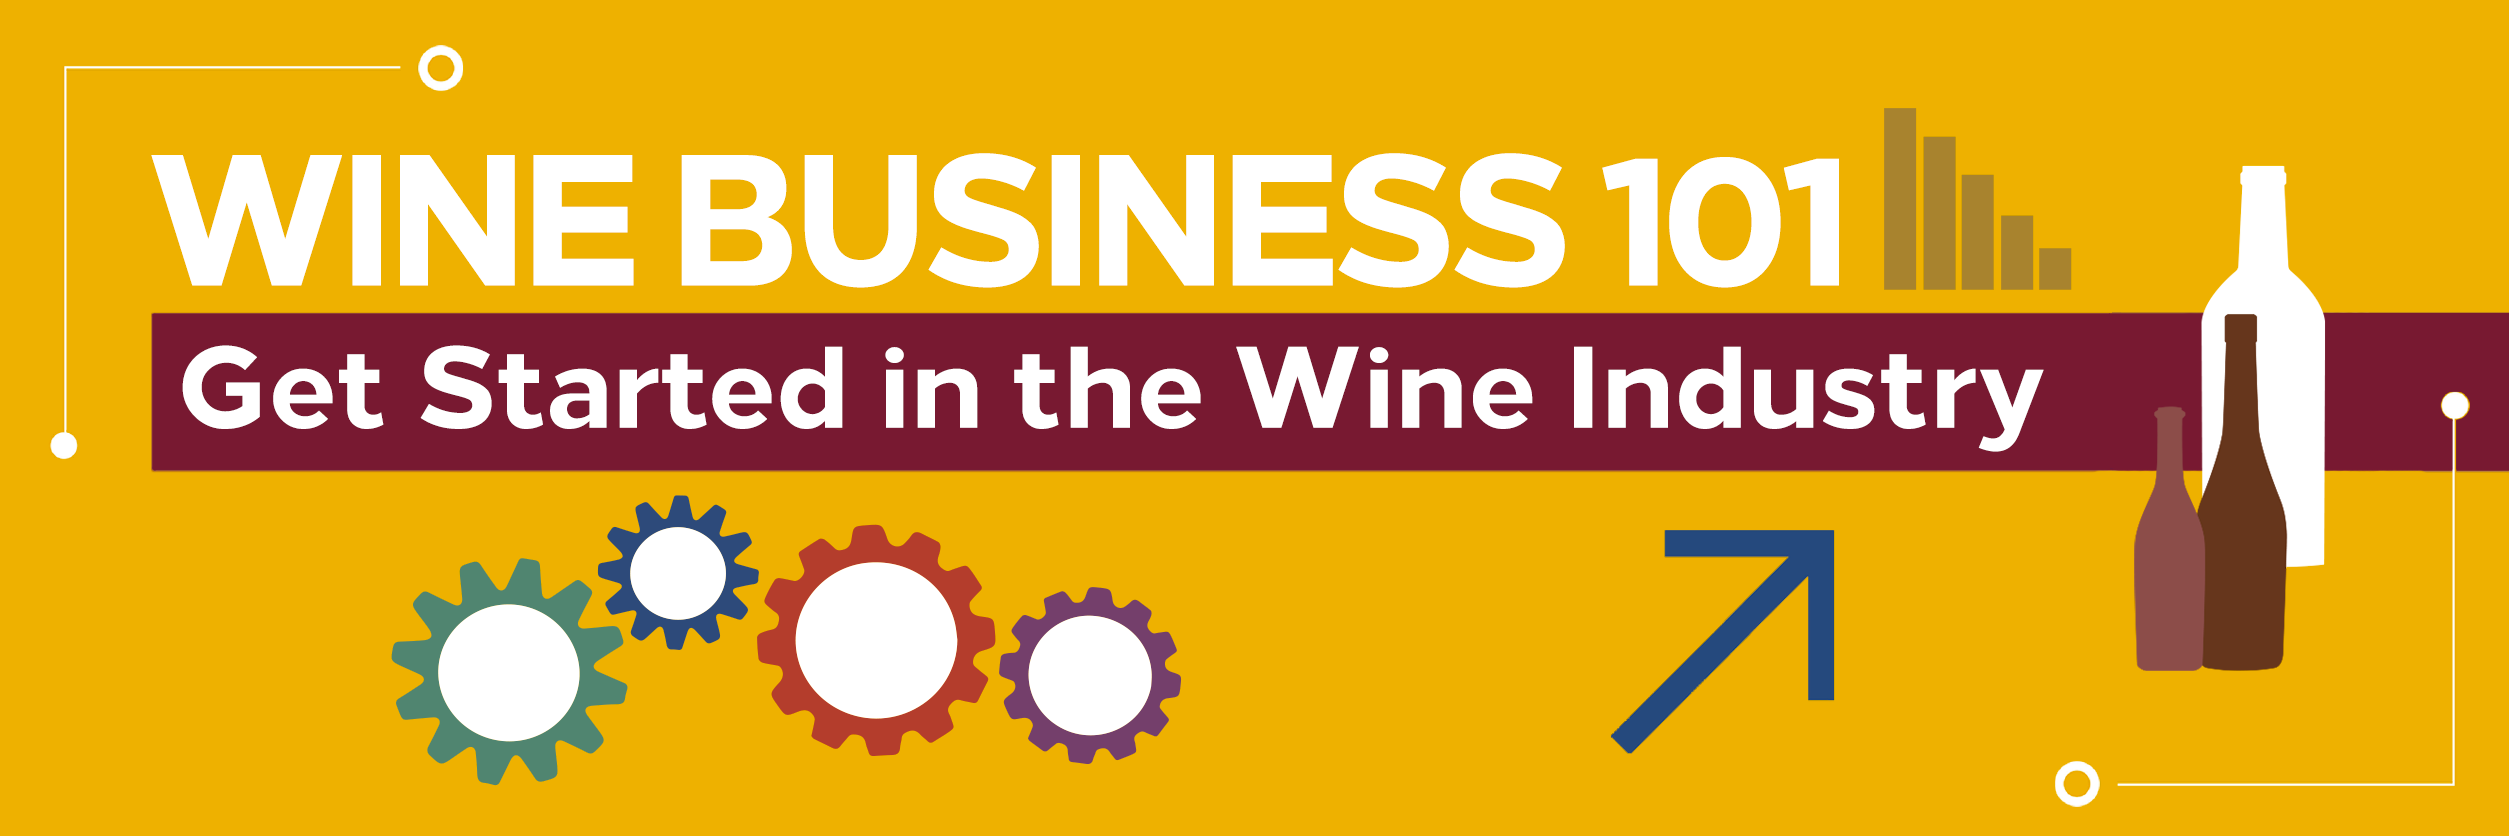 WINE BUSINESS 101